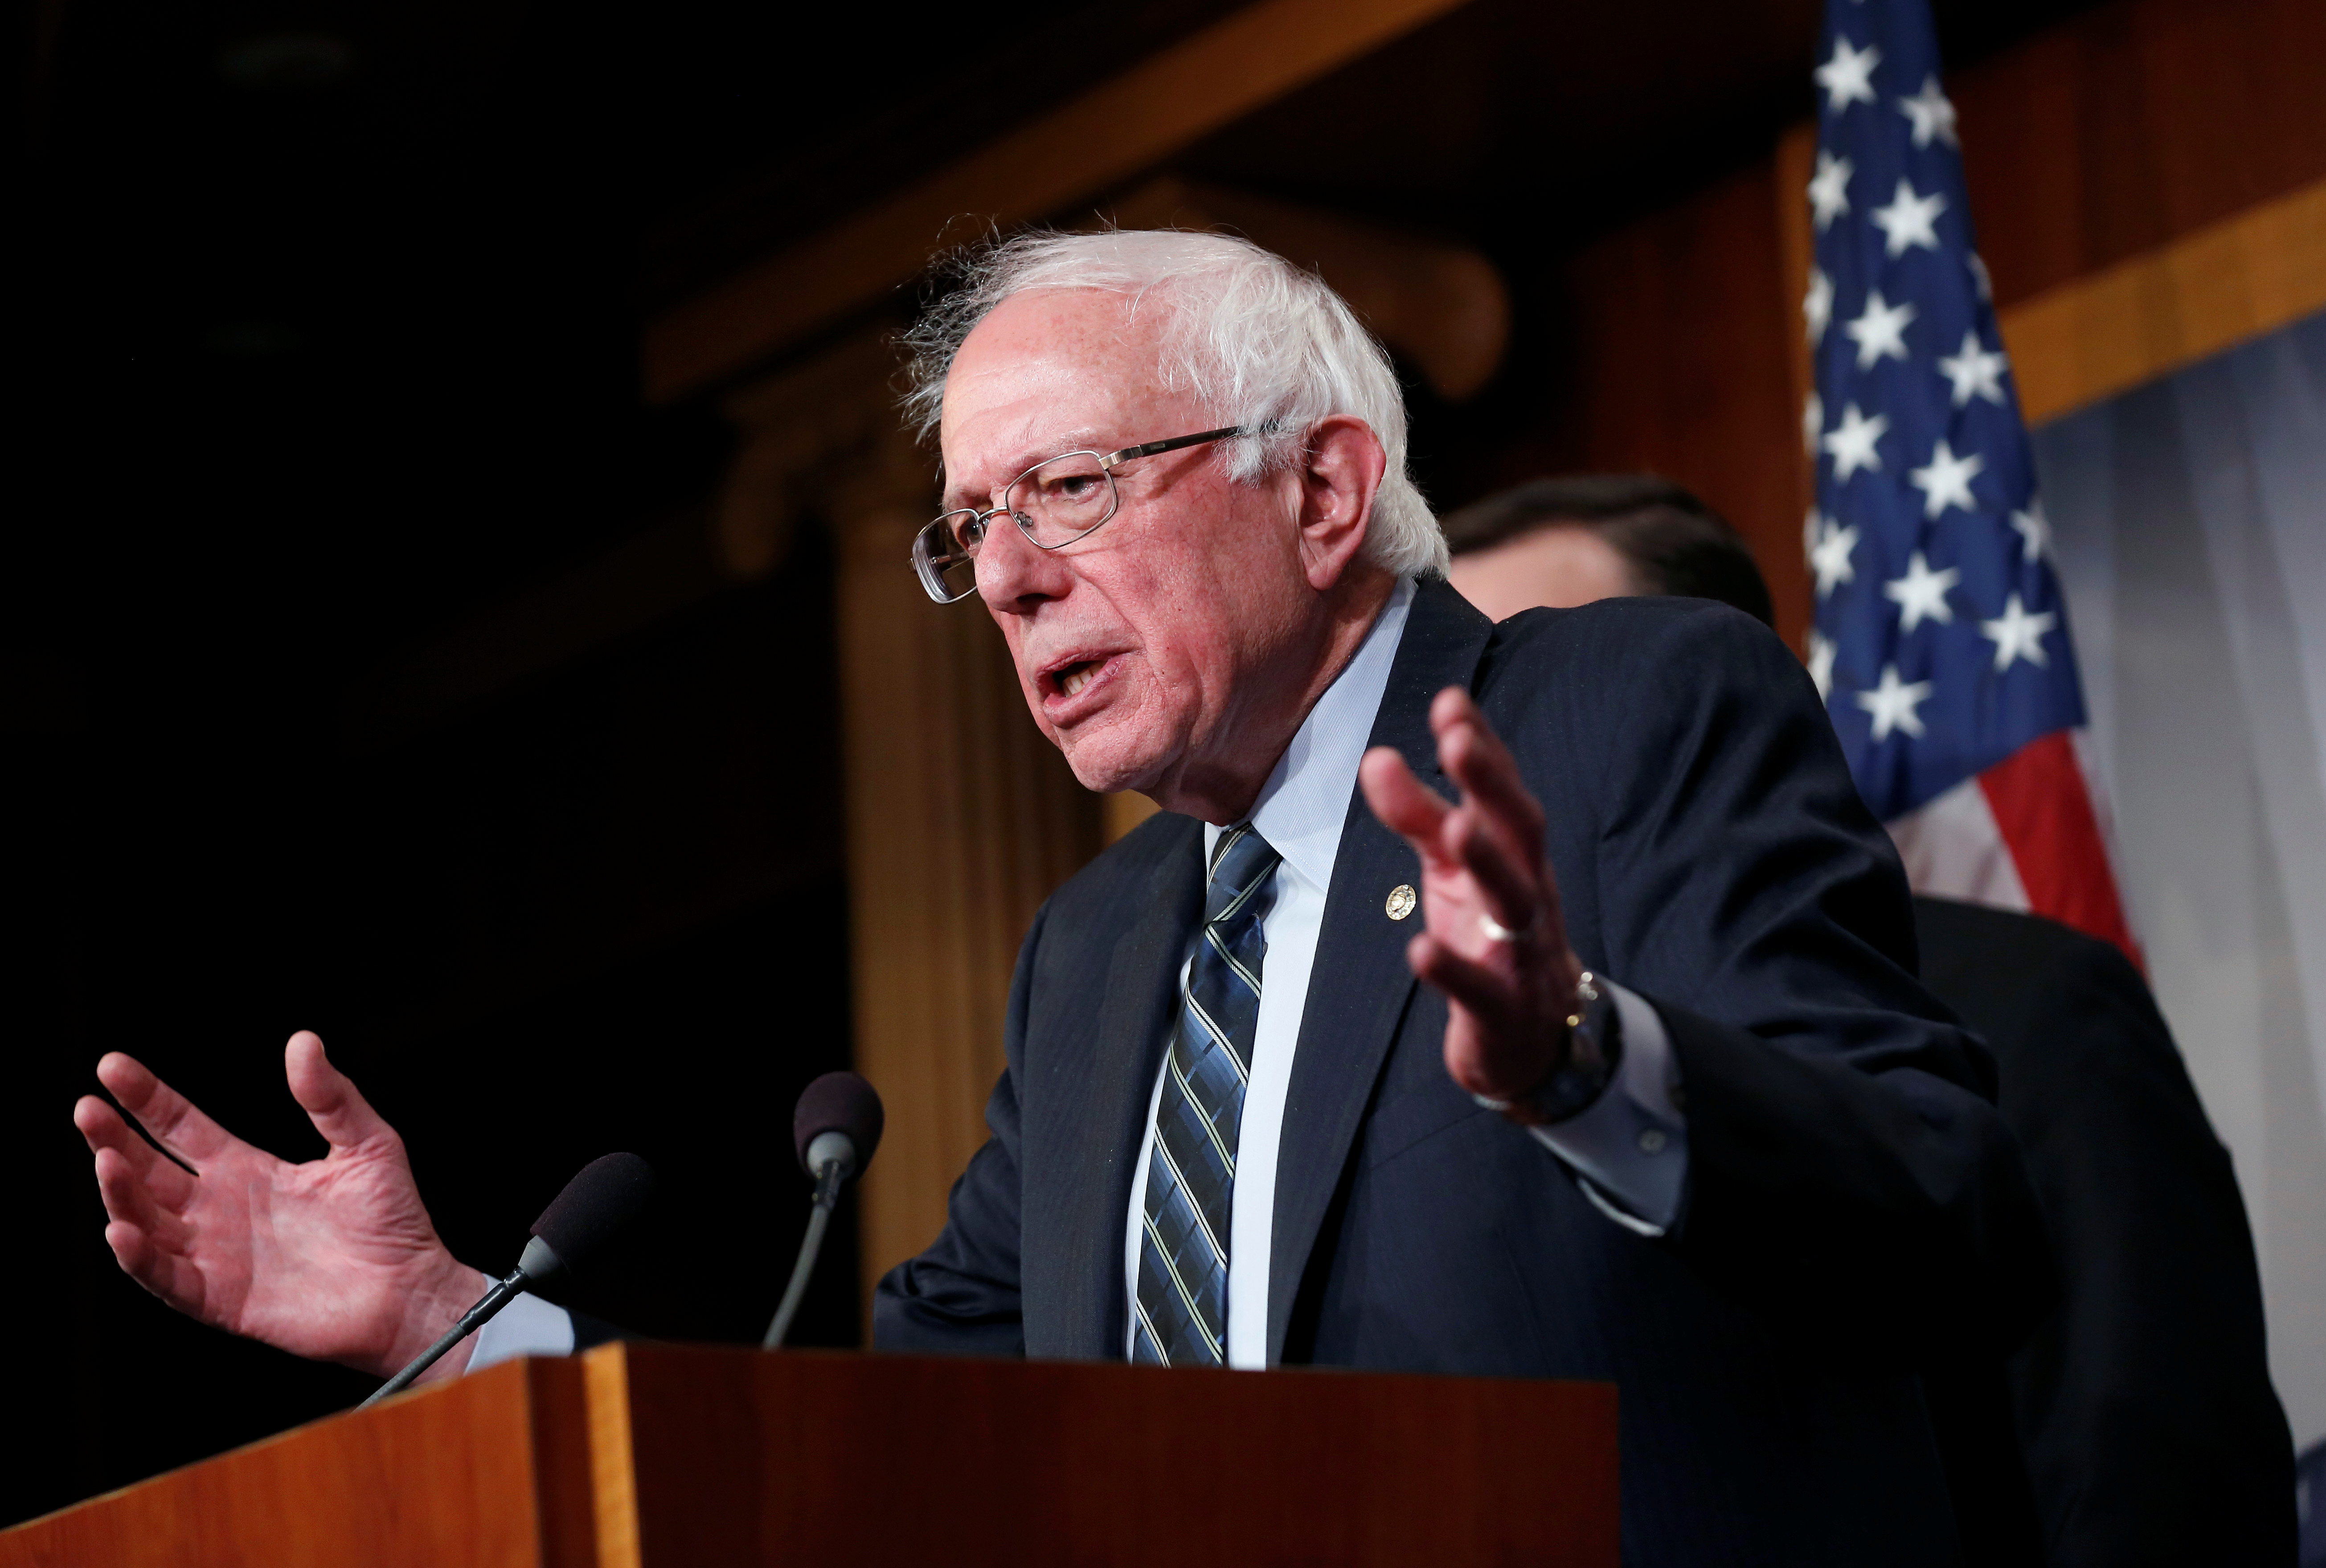 Senator Bernie Sanders (I-VT) speaks after the senate voted on a resolution ending U.S. military support for the war in Yemen on Capitol Hill in Washington